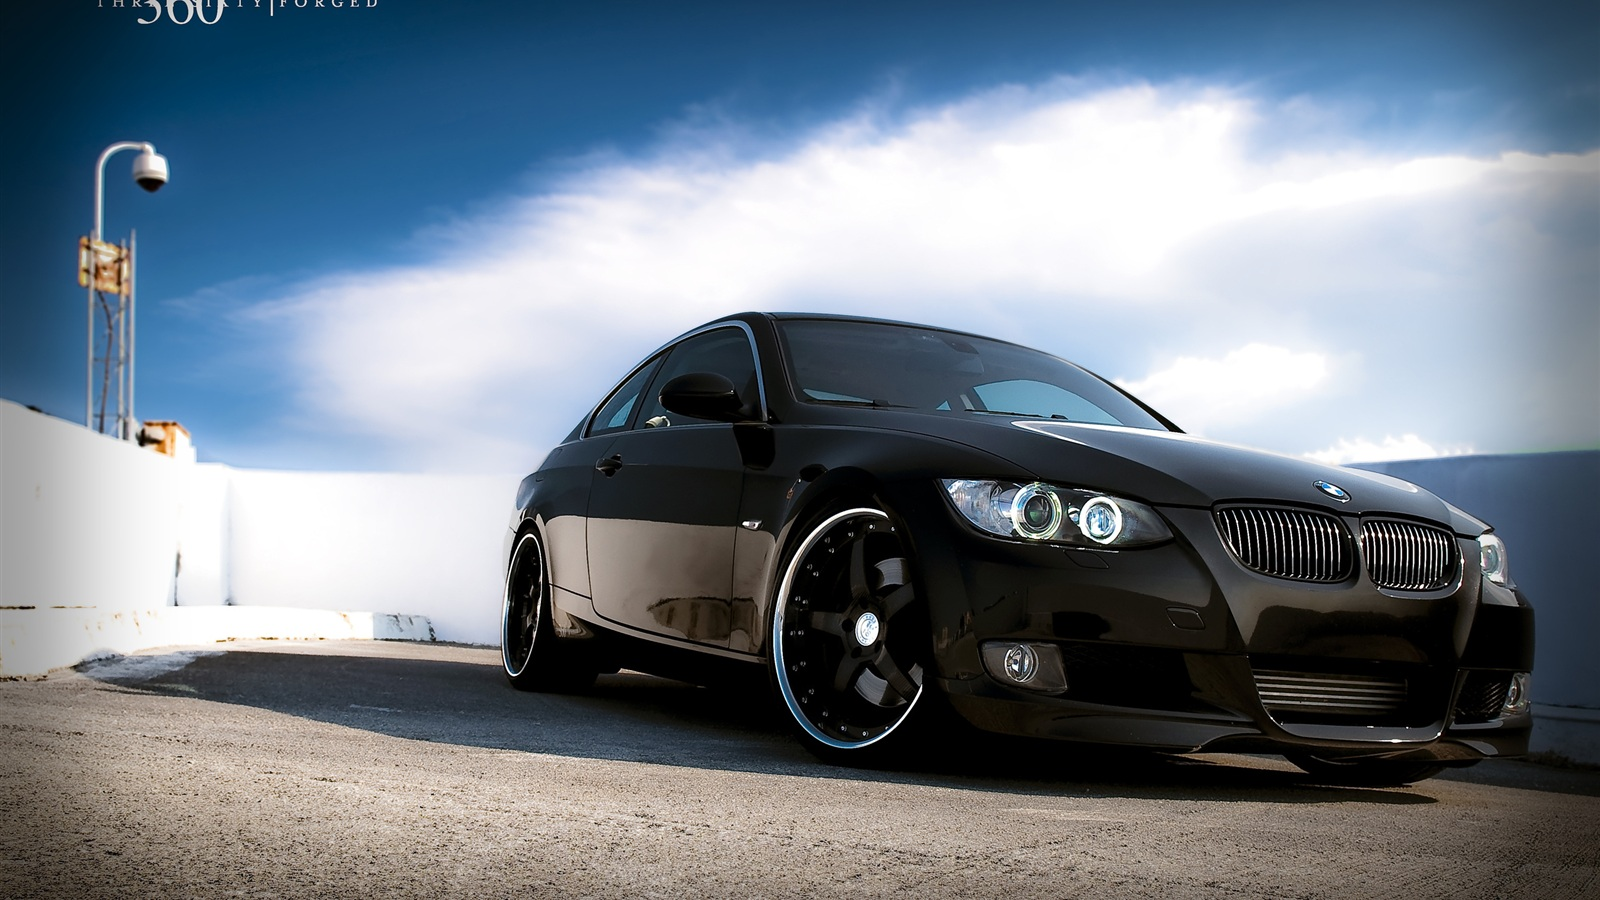 bmw cars images free download